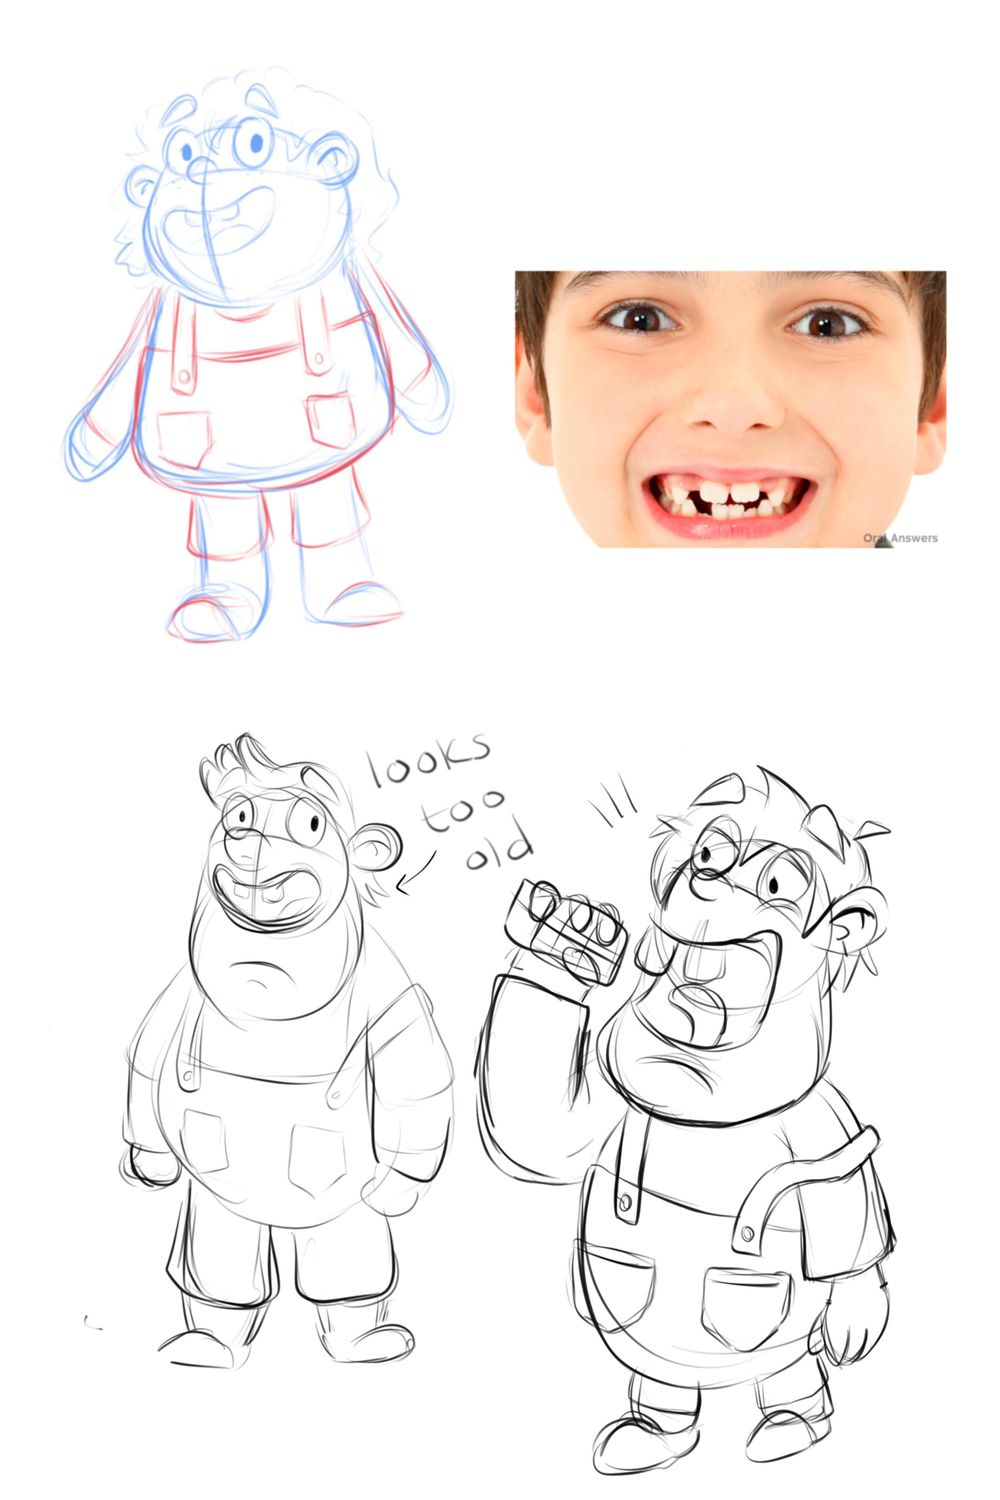 5 Boys - Character Design - image 2 - student project